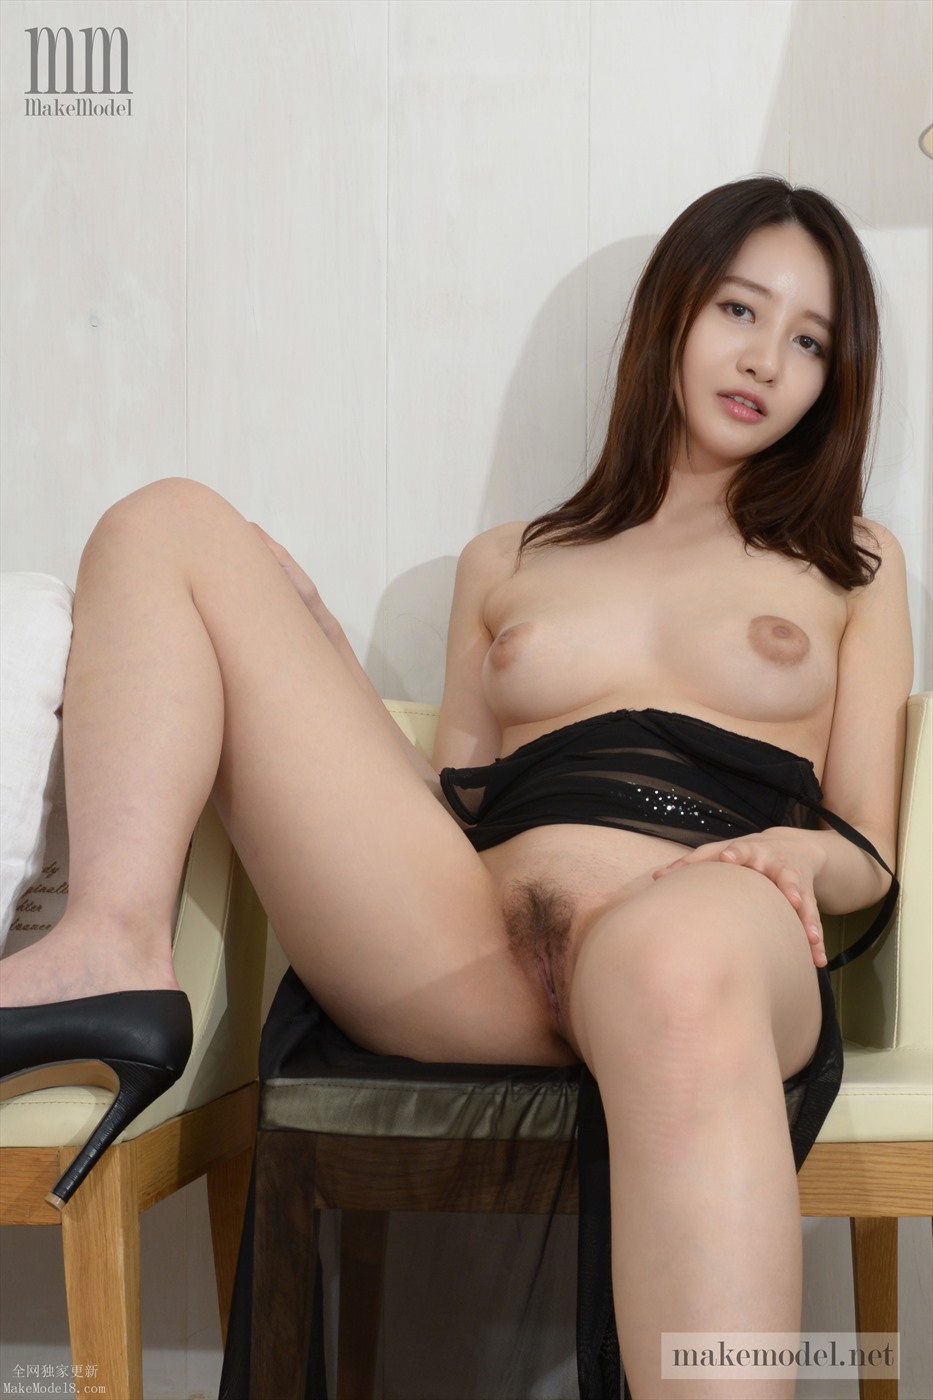 Can suggest Free korean girls nude final, sorry